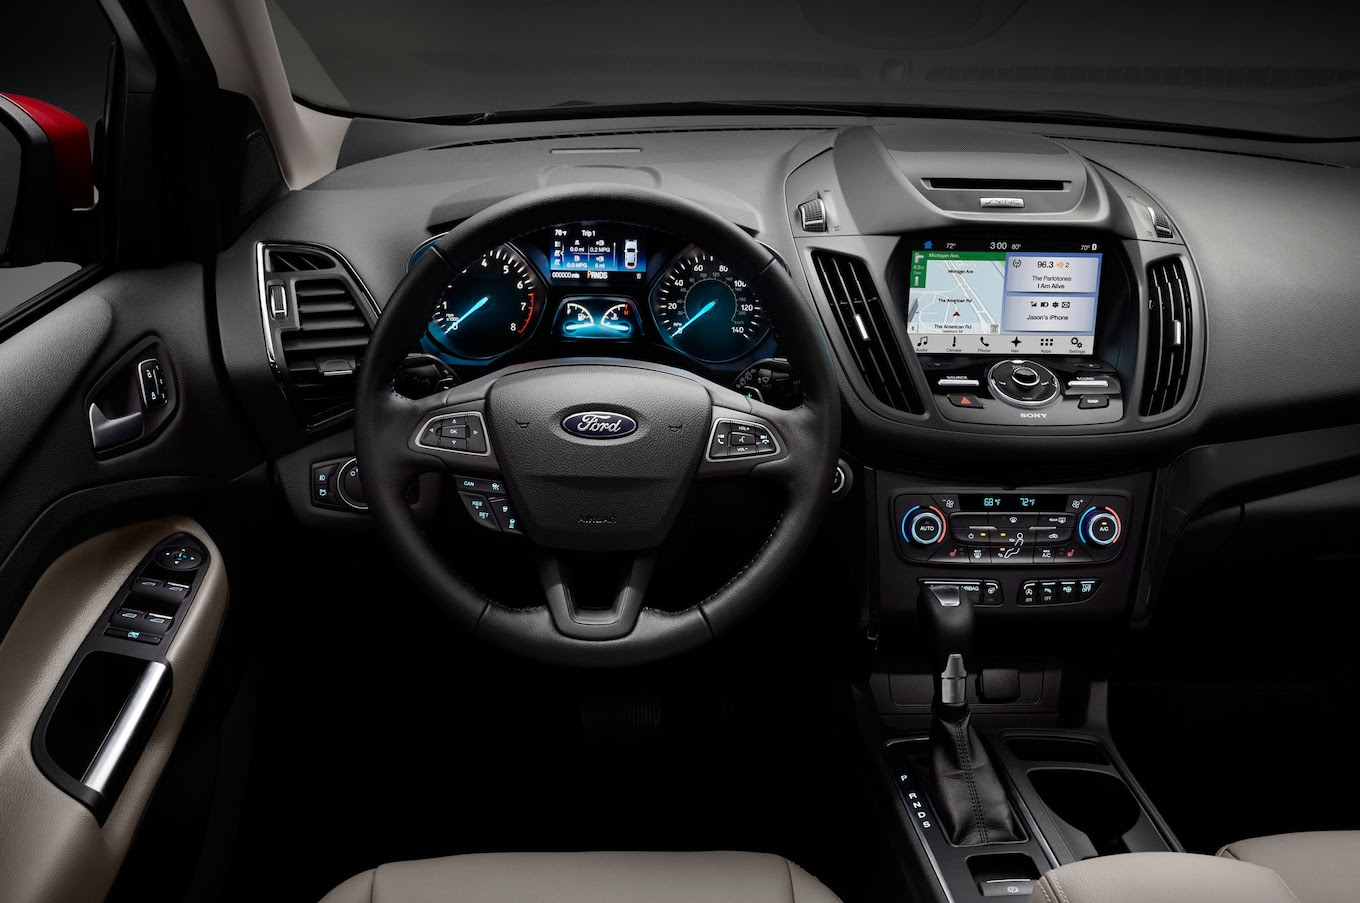 2017 Ford Escape 2017 Ford Escape And Review | 2017 - 2018 ...